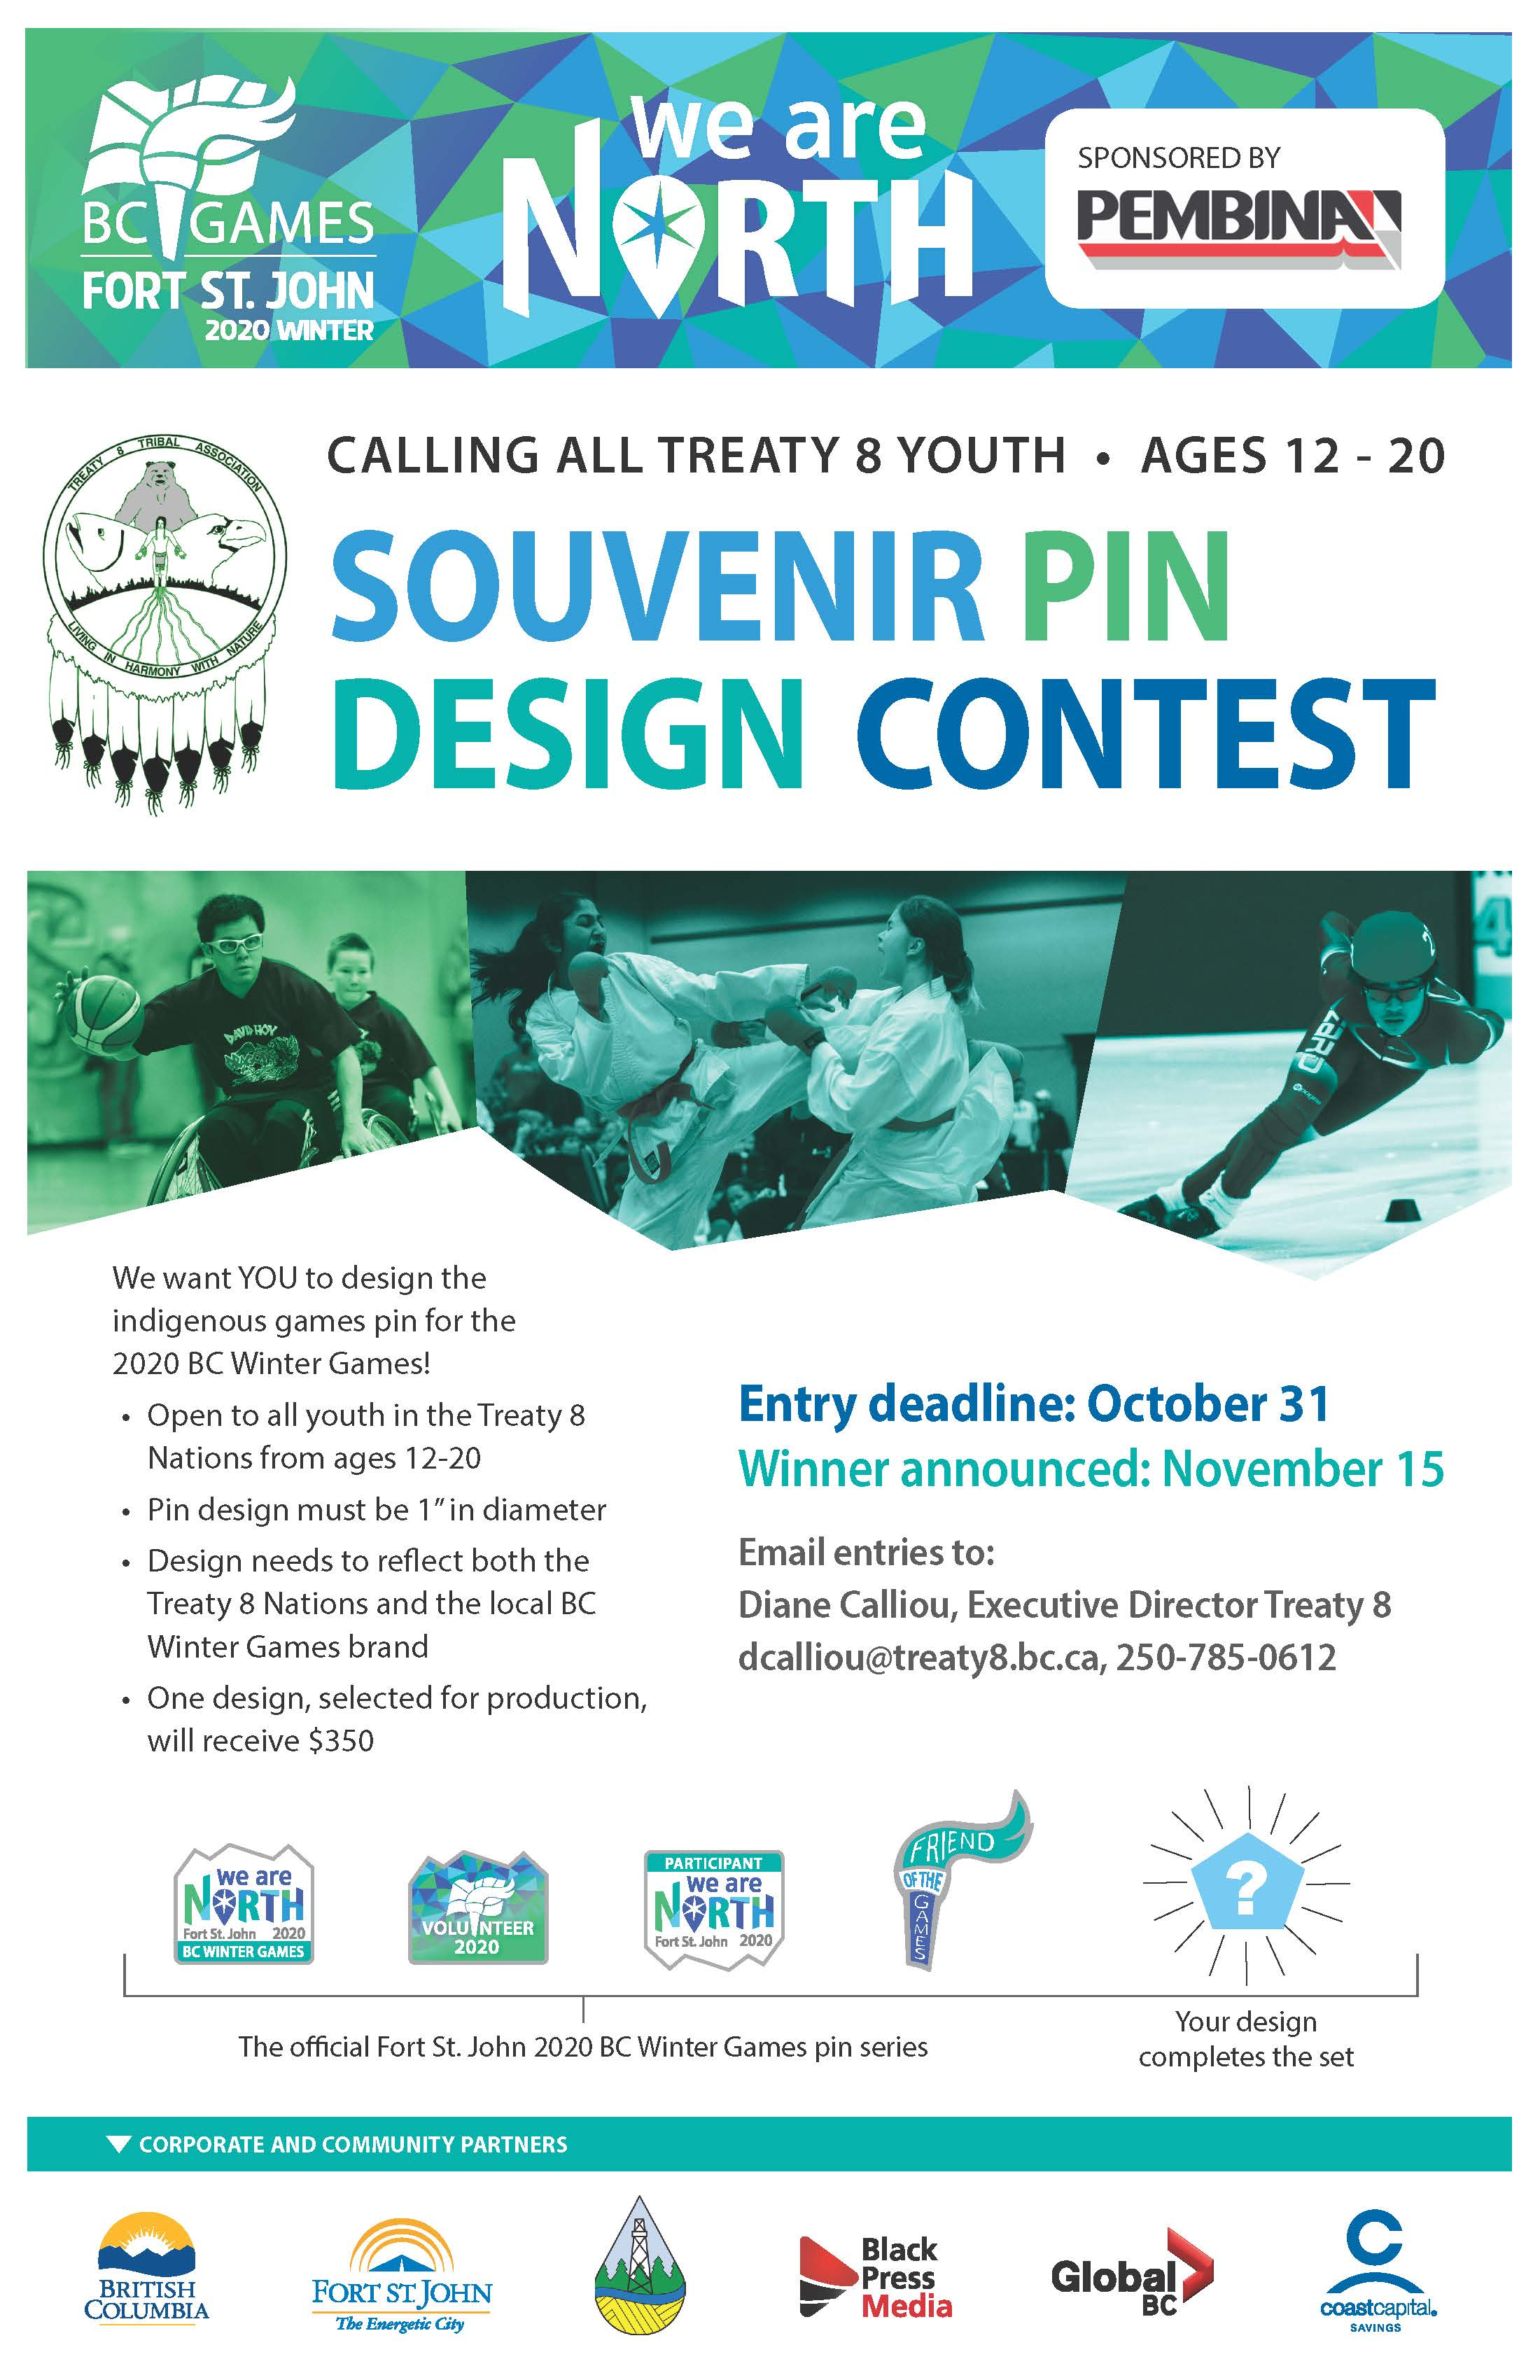 CALLING ALL TREATY 8 YOUTH - Souvenir Pin Design Contest